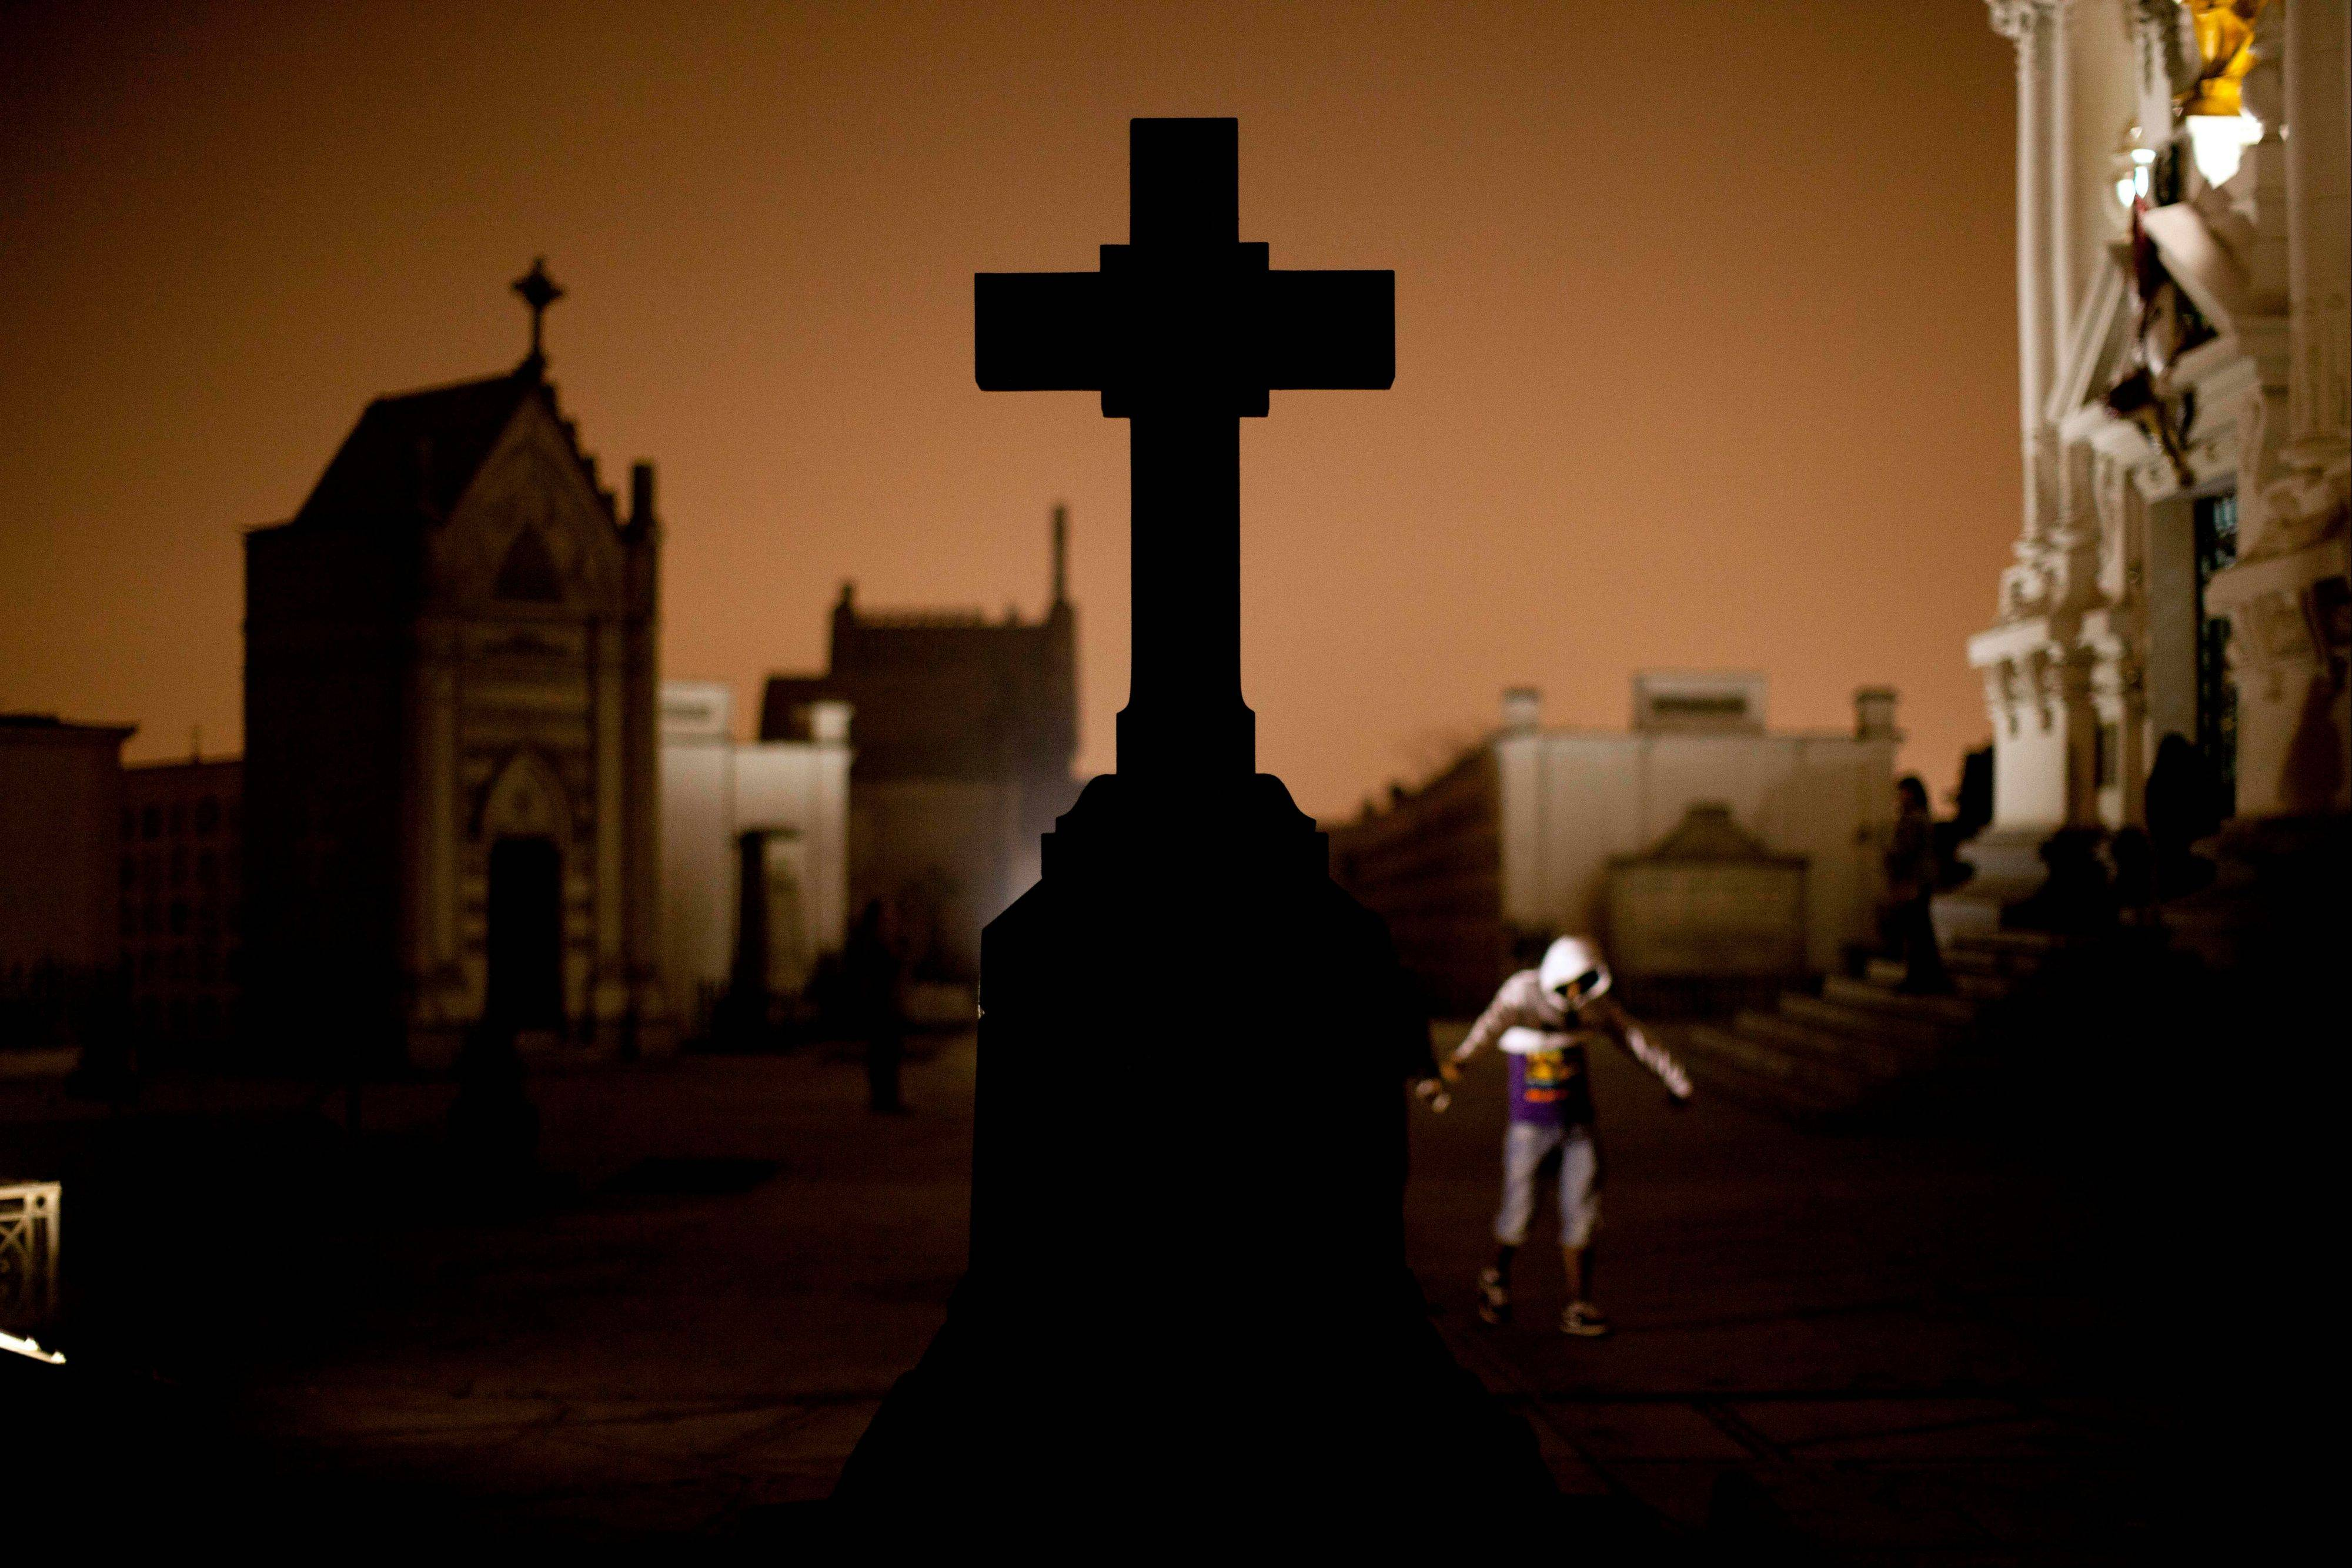 A cross stands in the Presbitero Matias Maestro cemetery during a nighttime guided tour in Lima. The cemetery, created by one of the last Spanish viceroys, was established outside the walls of old Lima.